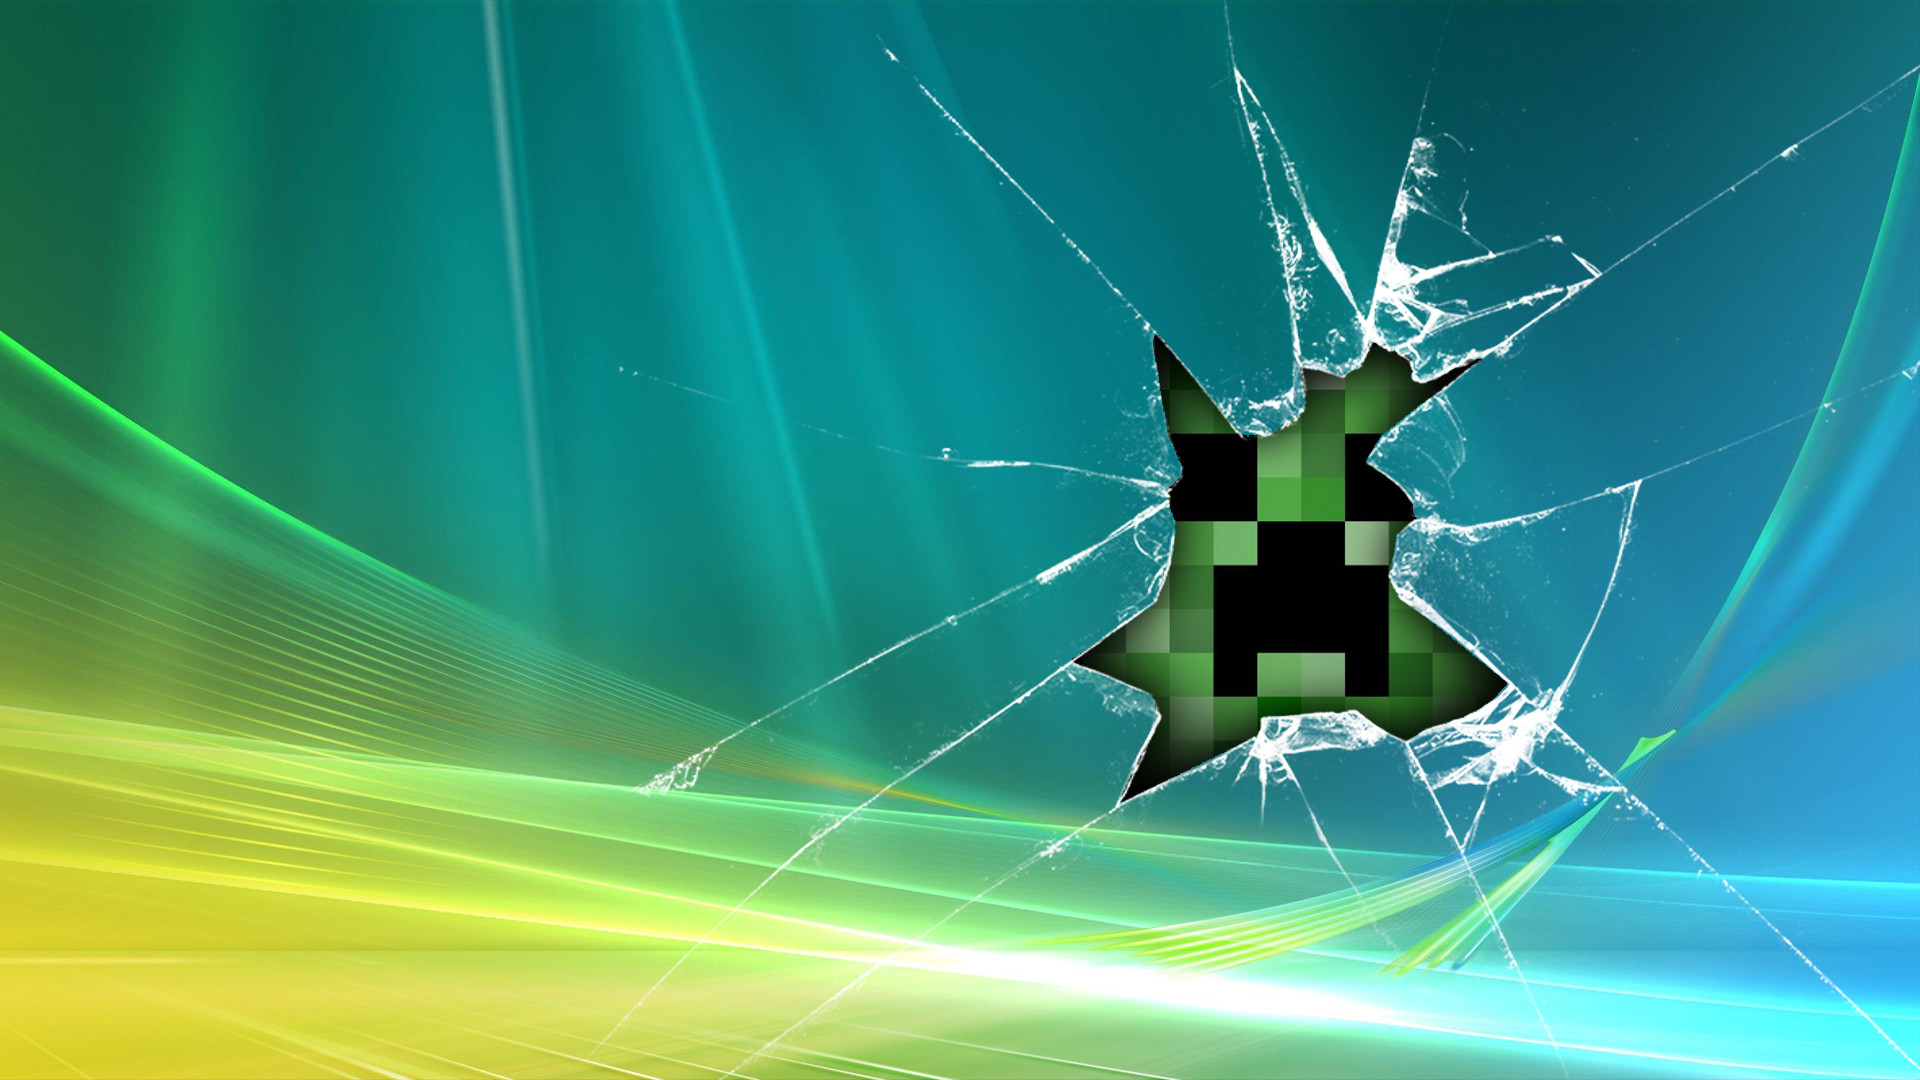 Res: 1920x1080, wallpaper little pony injulen andyd4 creeper windows